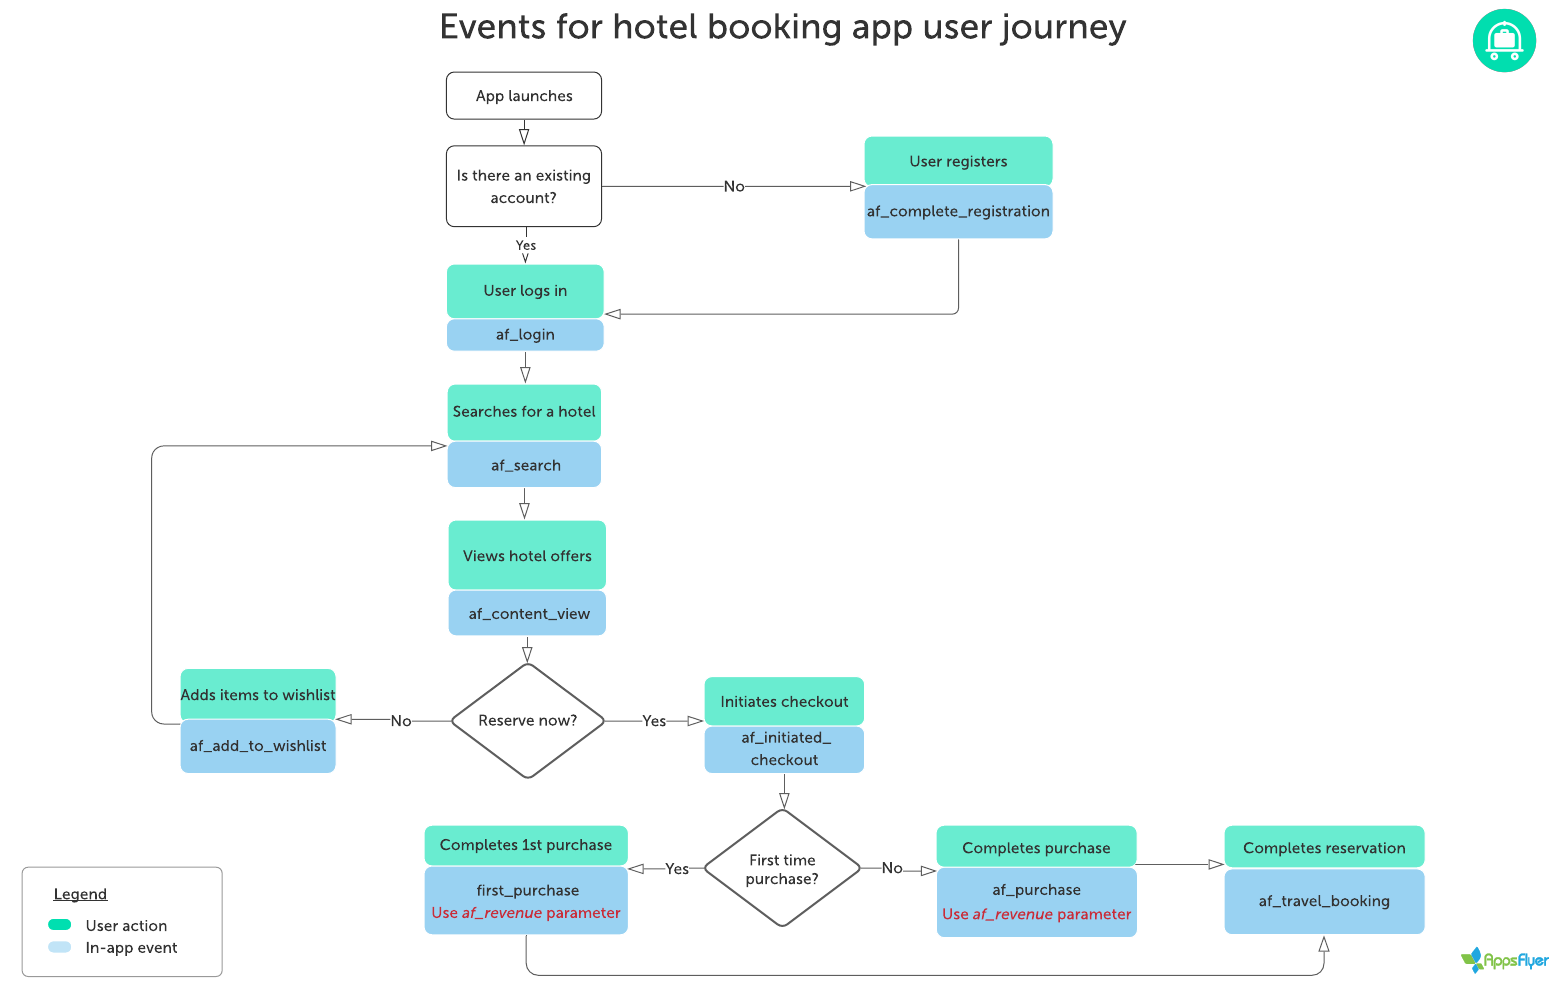 Flowchart_for_recommended_events_hotel_booking_app_user_journey